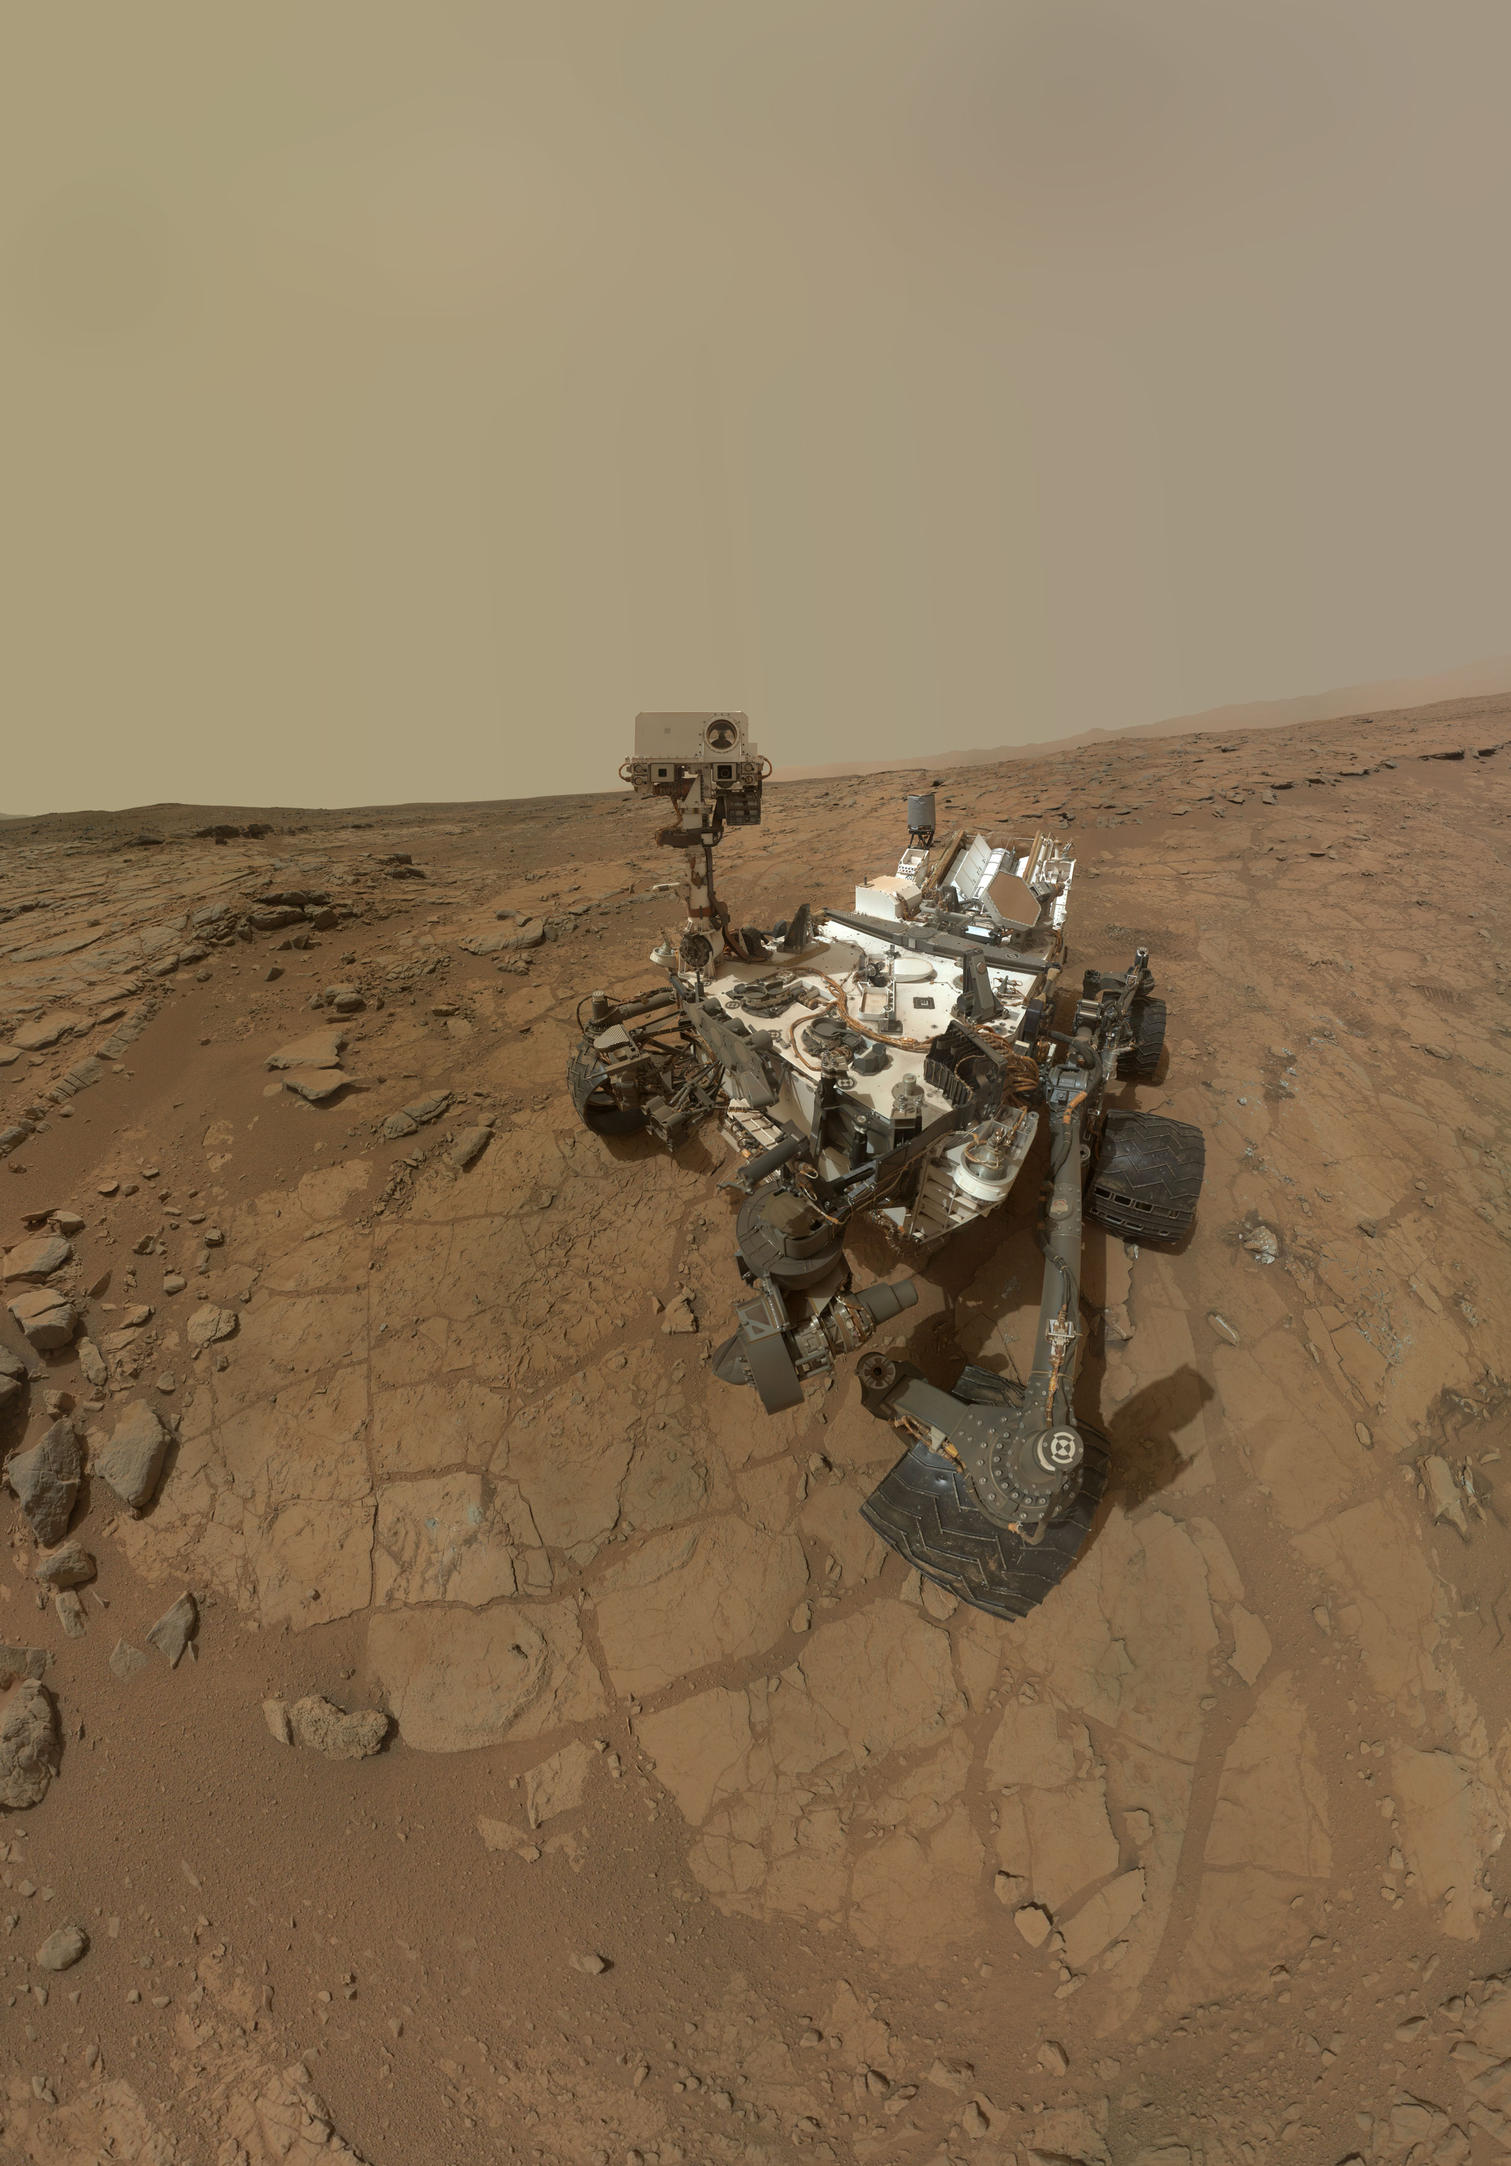 Curiosity Rover's Self Portrait at 'John Klein' Drilling Site, Cropped